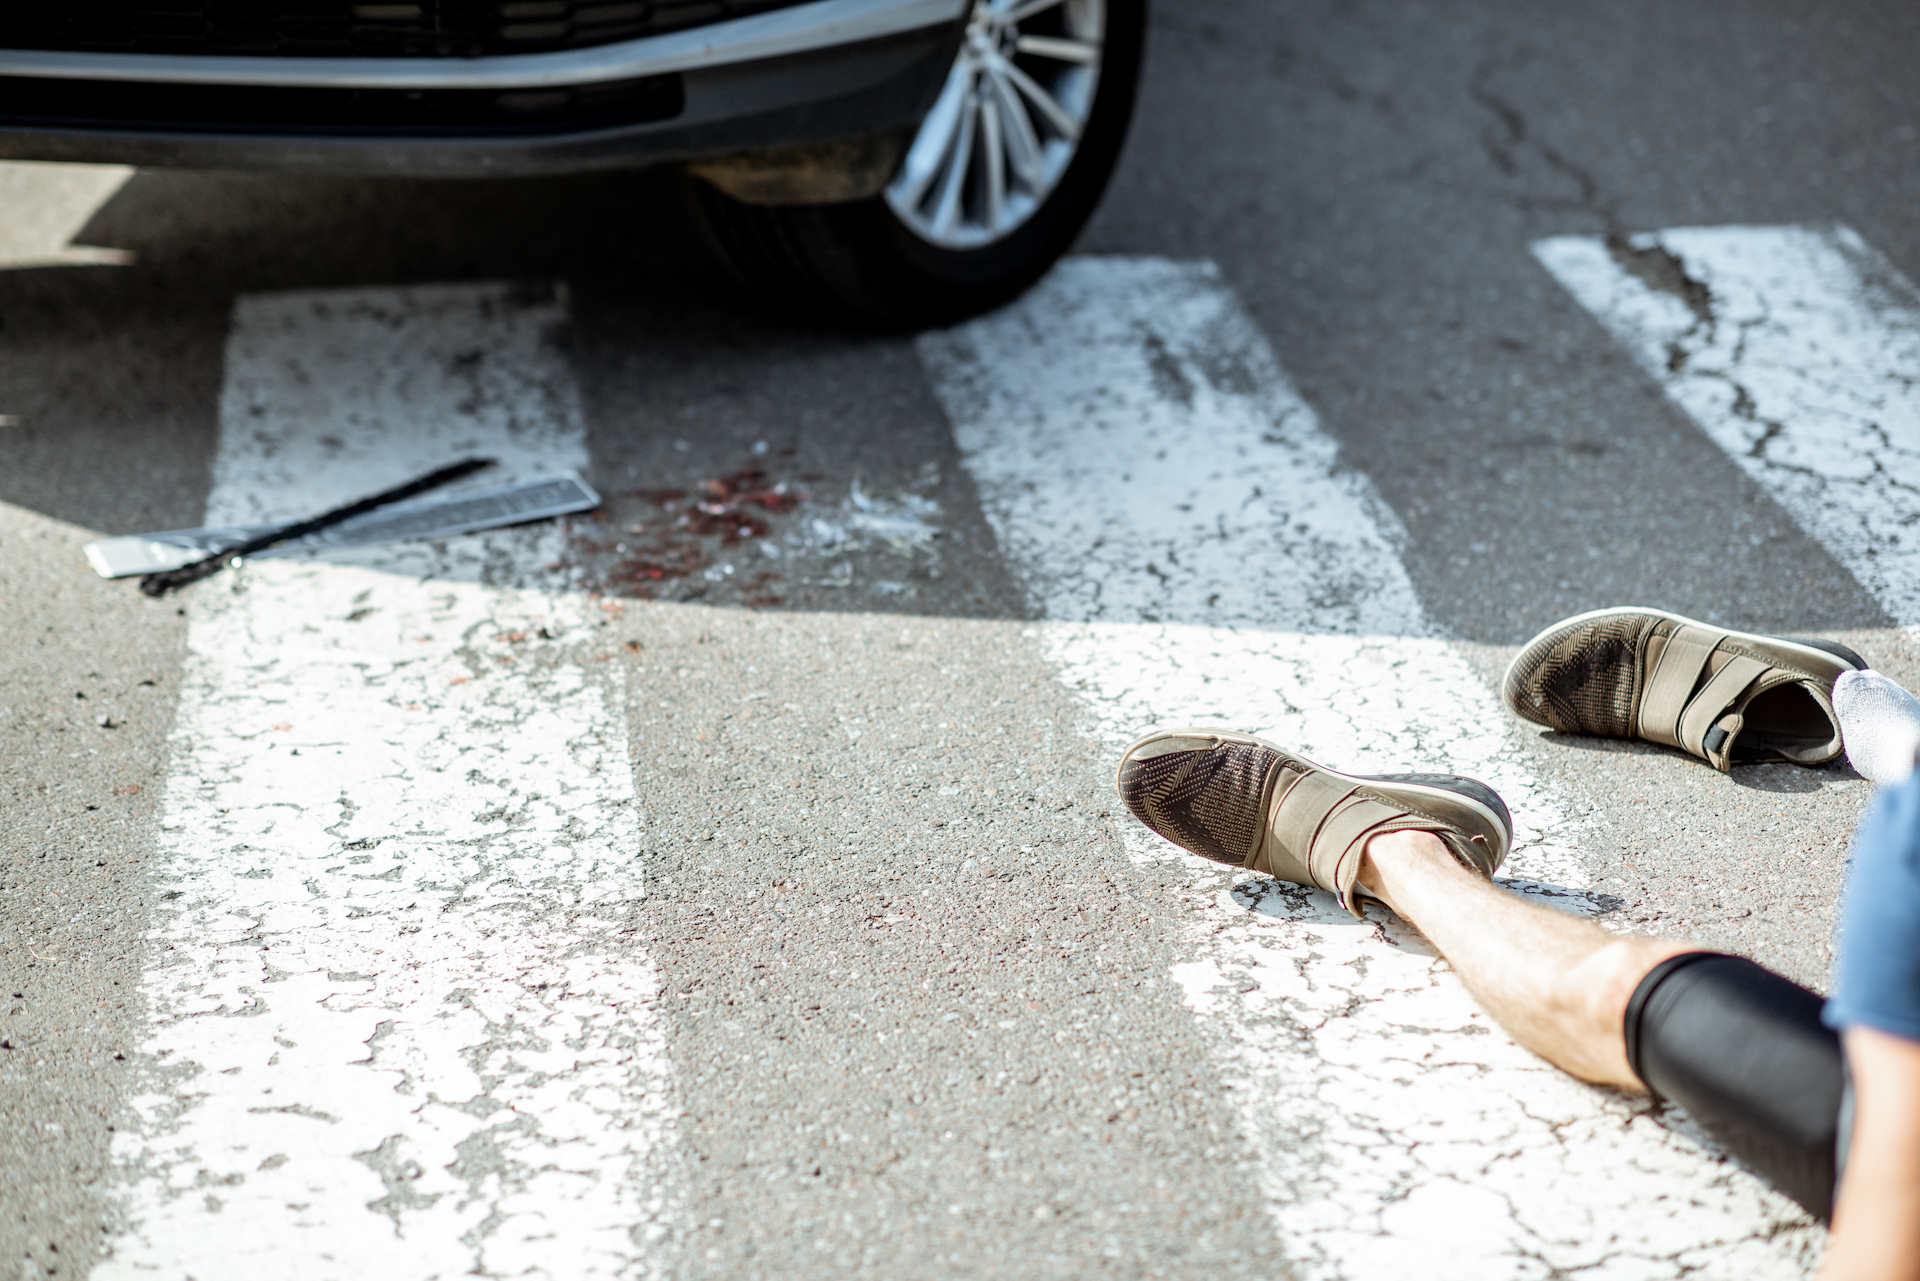 road accident with injured man - Personal Injury Attorney in Nashville - Wrongful Death Attorney, Truck Accident Lawyer, Car Accident Lawyer, and more | Meyers Injury Law